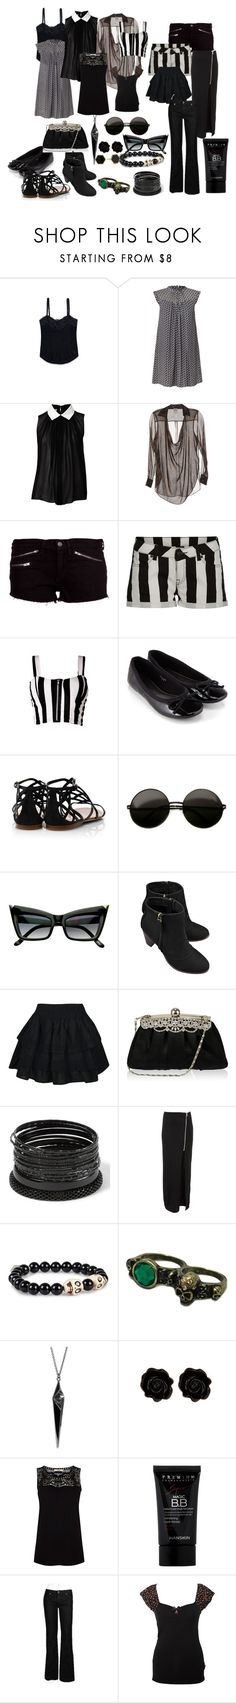 """""""Five days of summer goth"""" by izzysaid ❤ liked on Polyvore featuring Abercrombie & Fitch, Orla Kiely, Witchery, Haute Hippie, rag & bone, Accessorize, Tory Burch, Mint, Rare London and Pilgrim"""